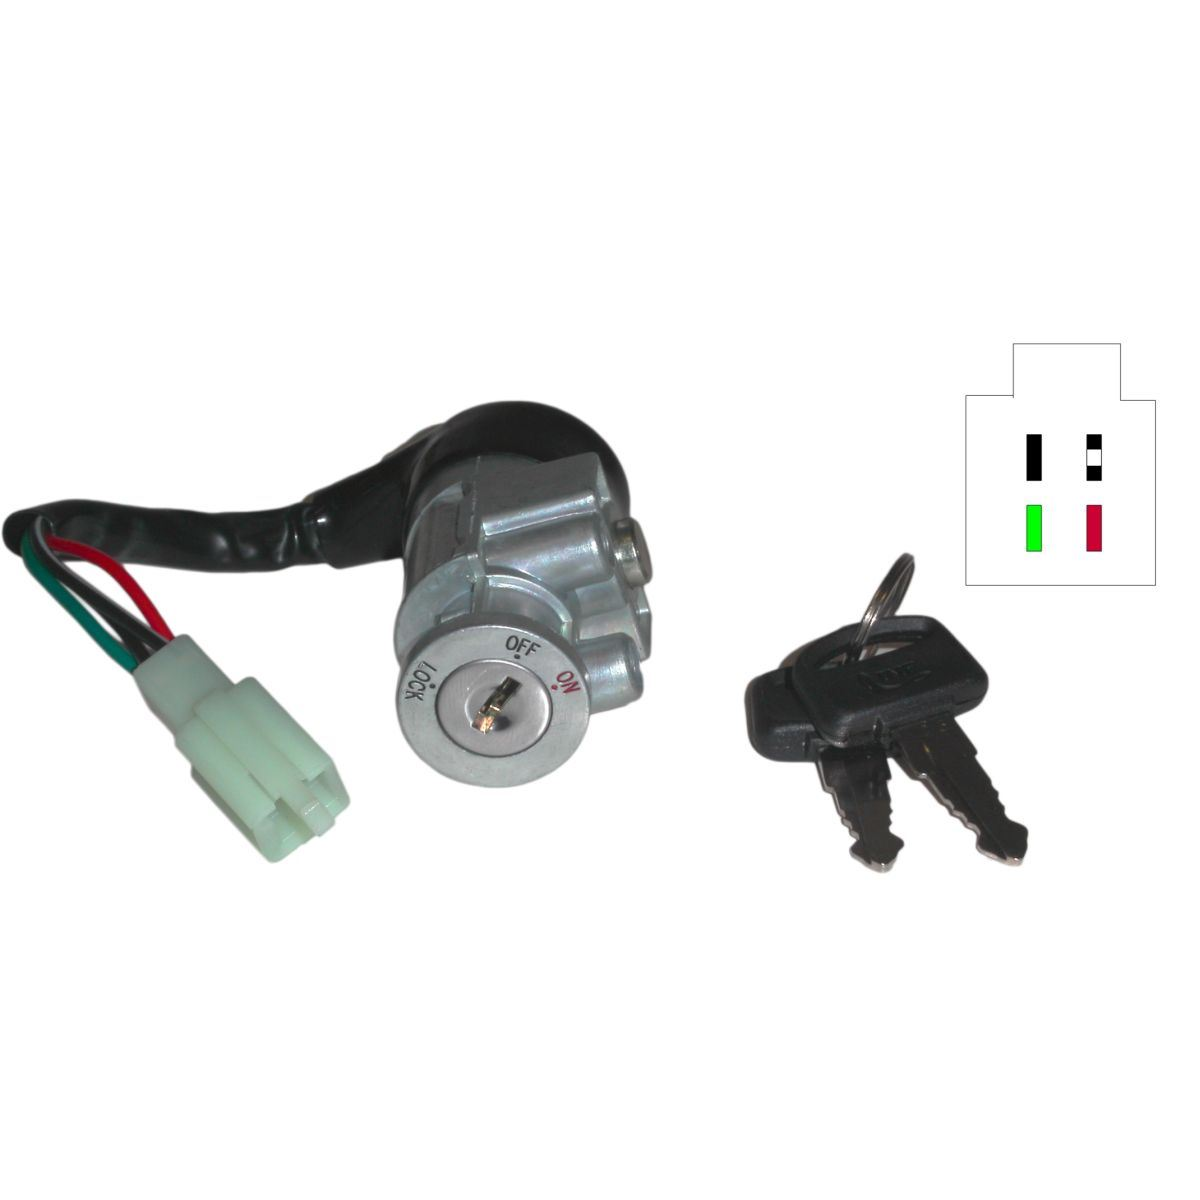 Picture of Ignition Switch Honda Melody 4 Wires